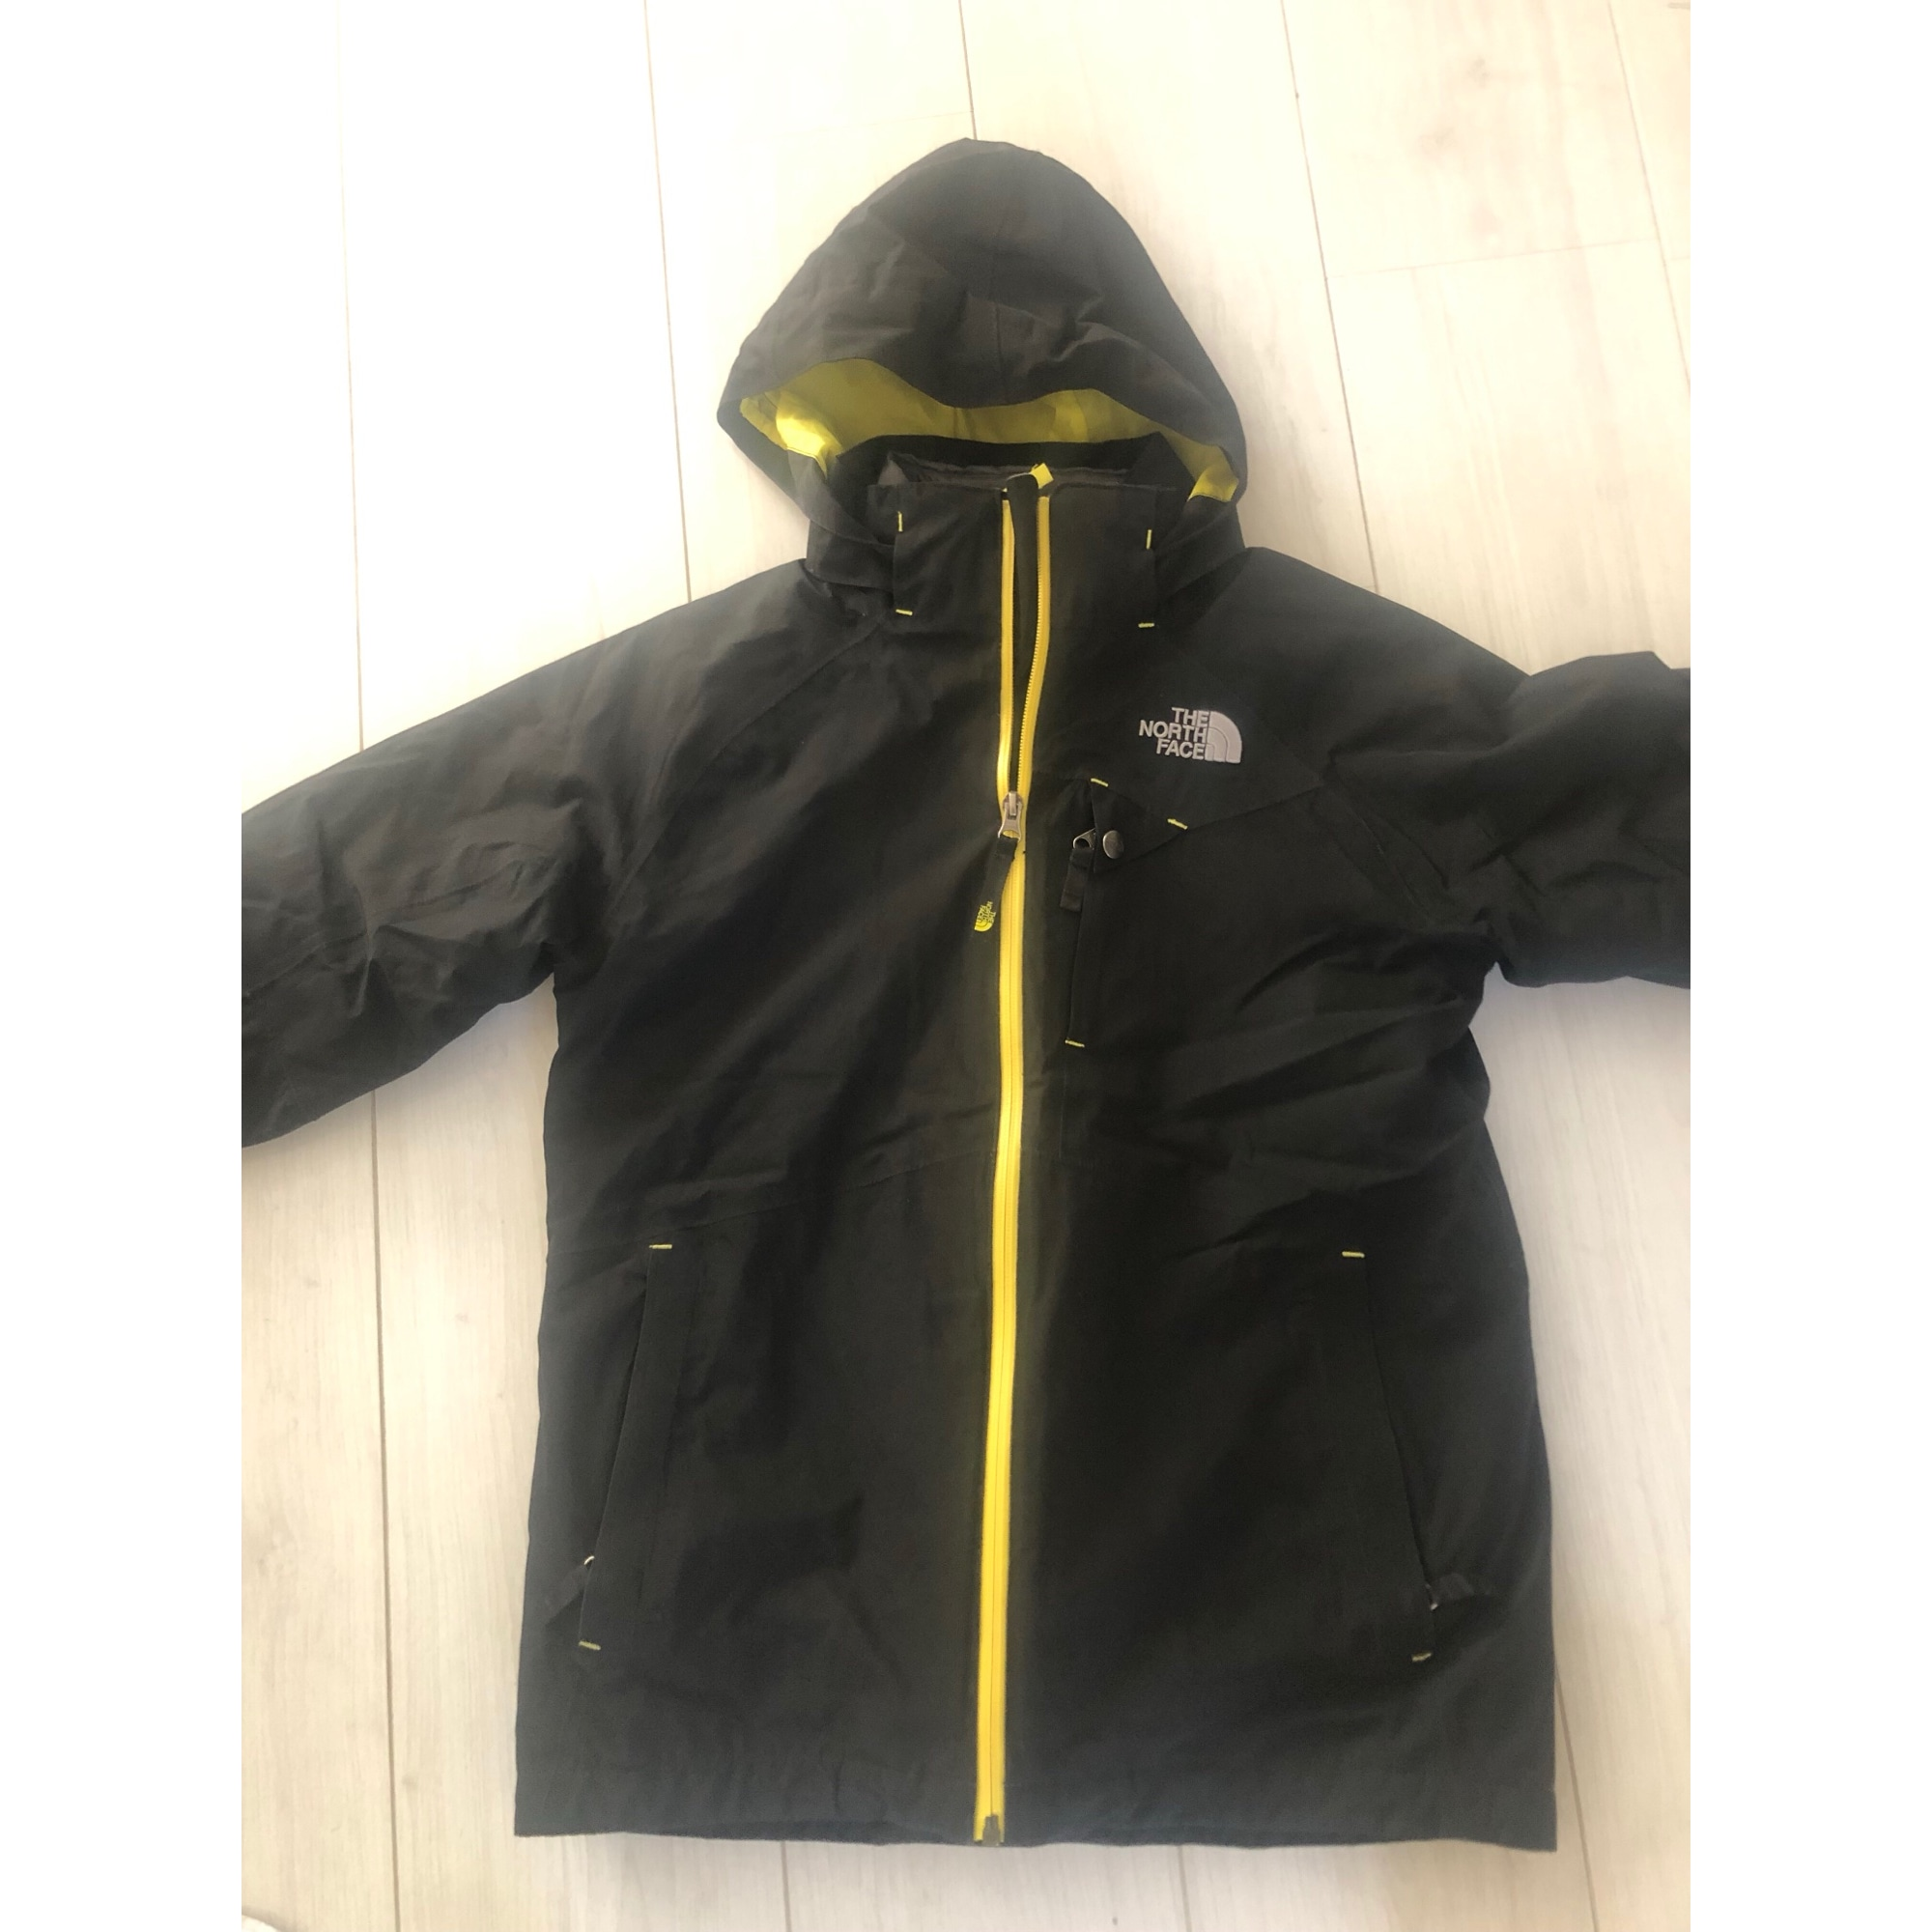 Blouson de ski THE NORTH FACE 15-16 ans noir